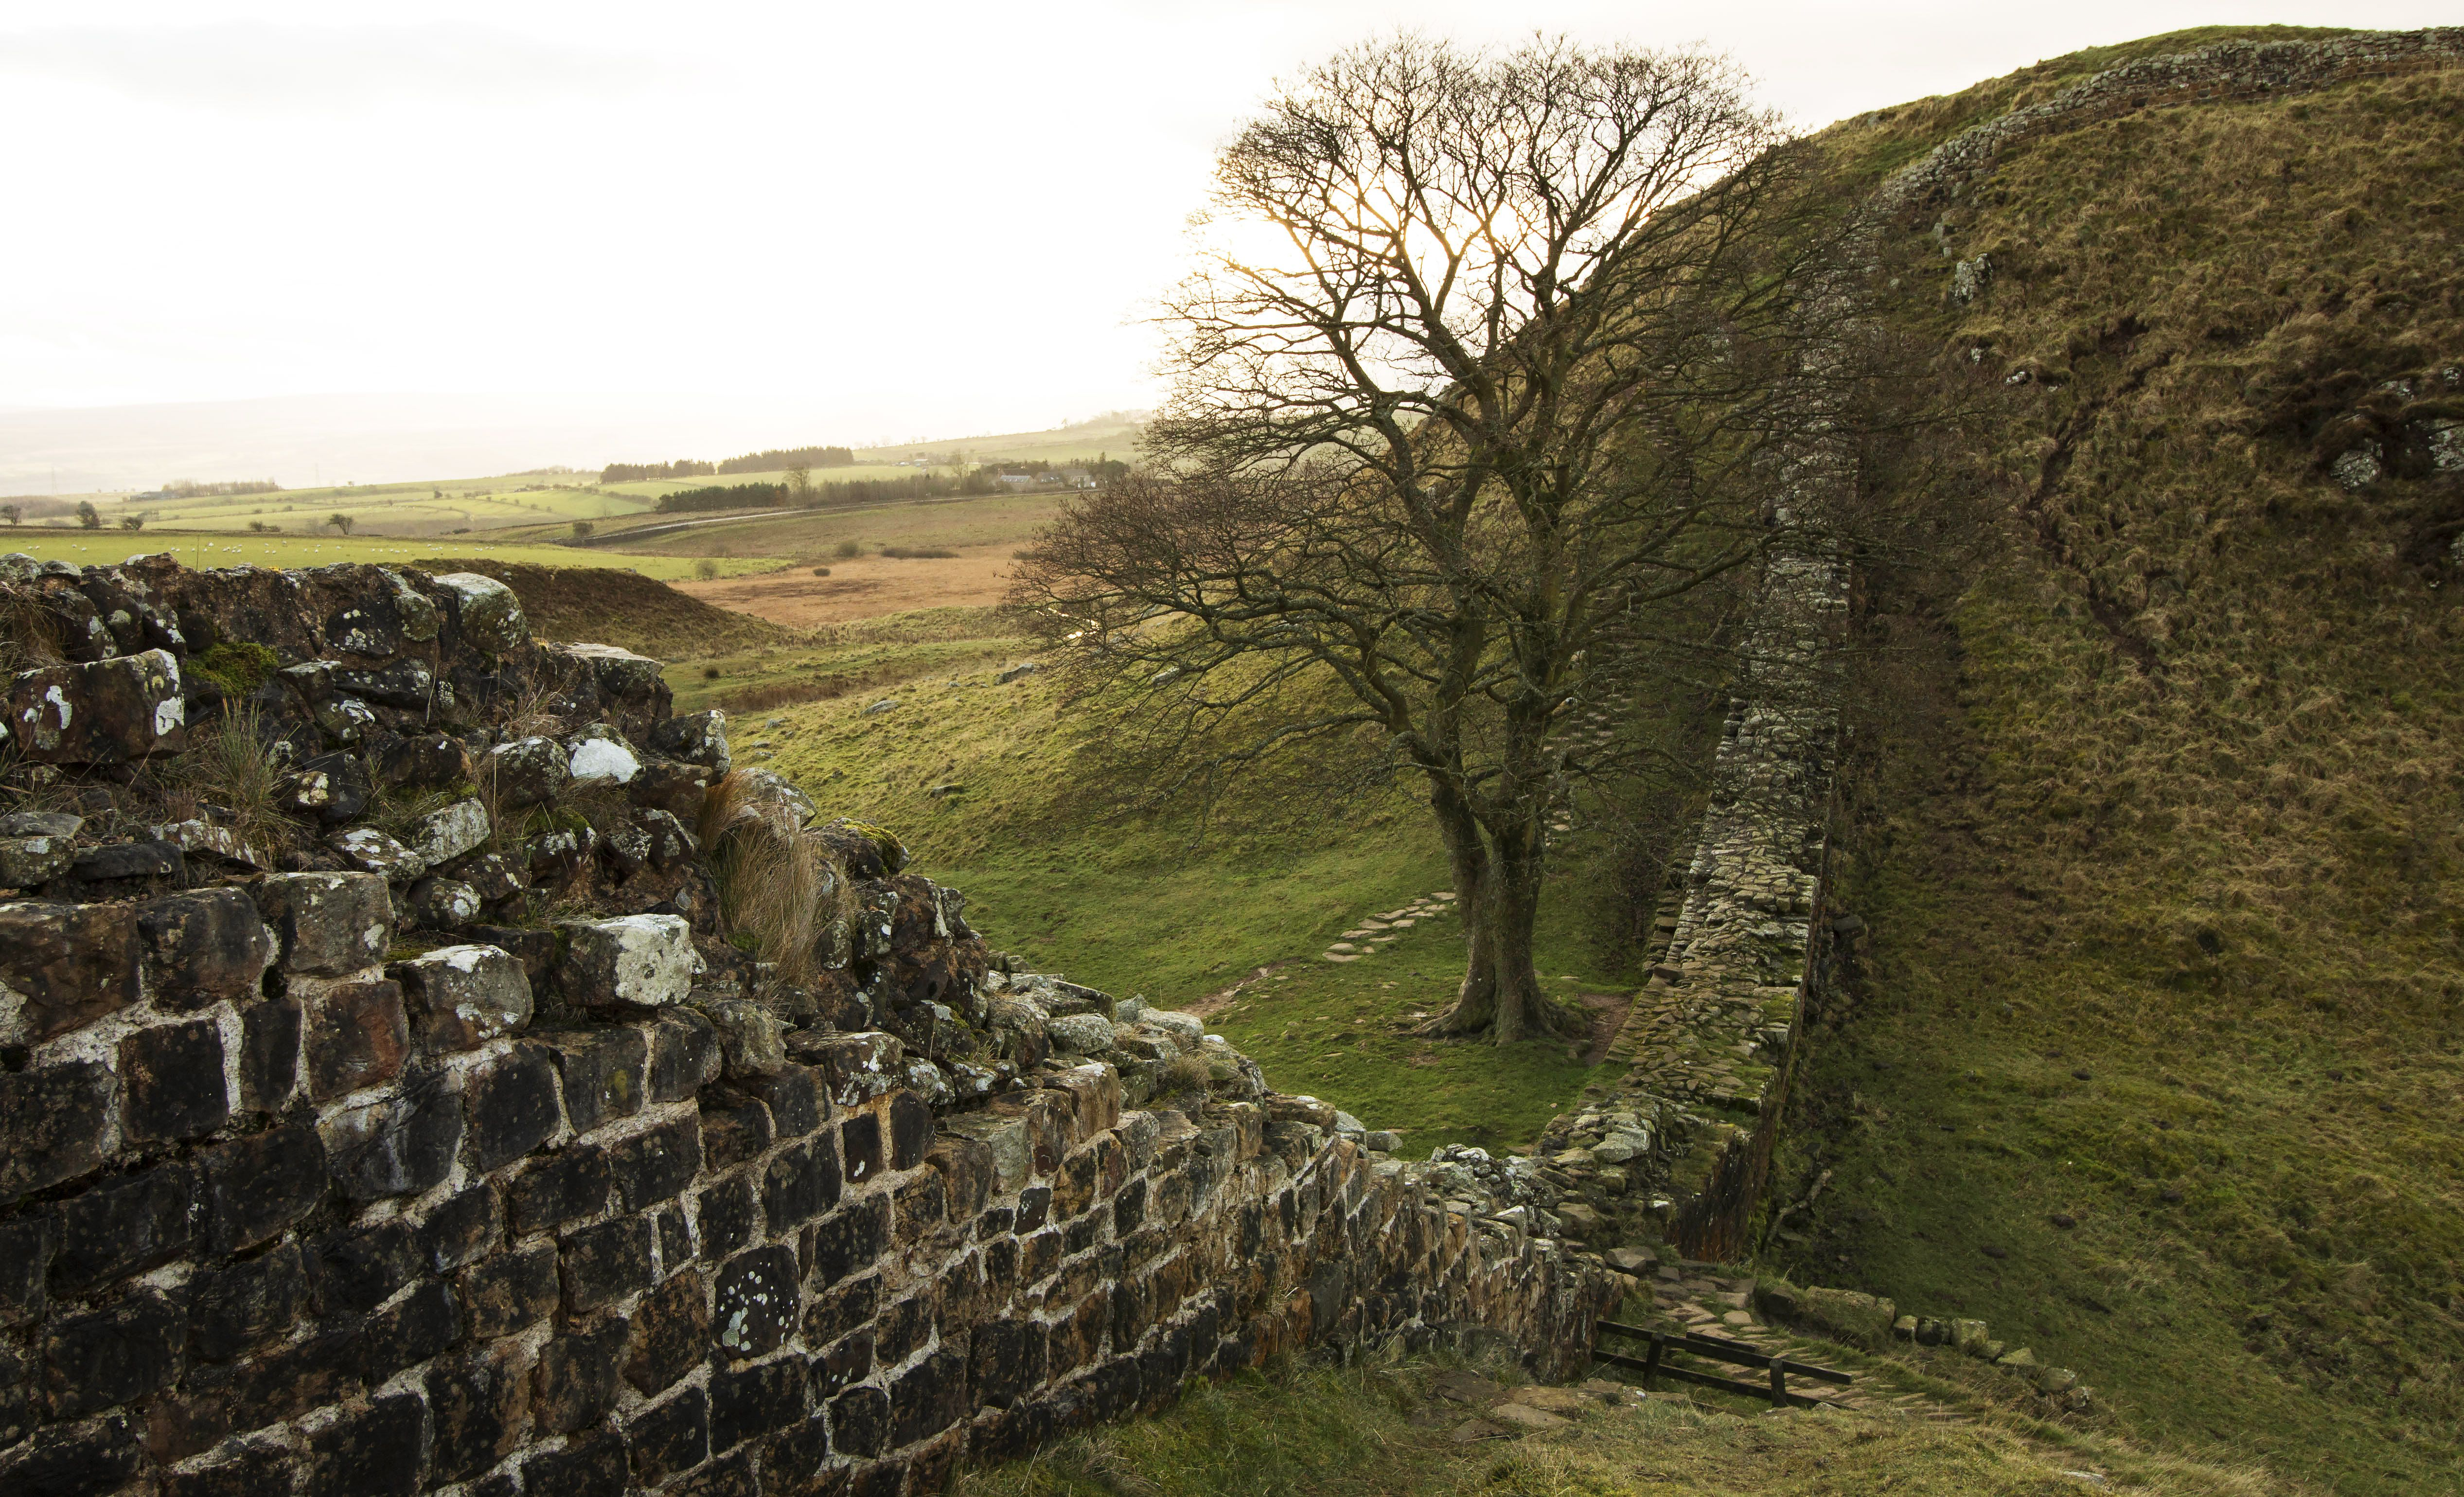 Hadrian's Wall curving up hills and around a tree